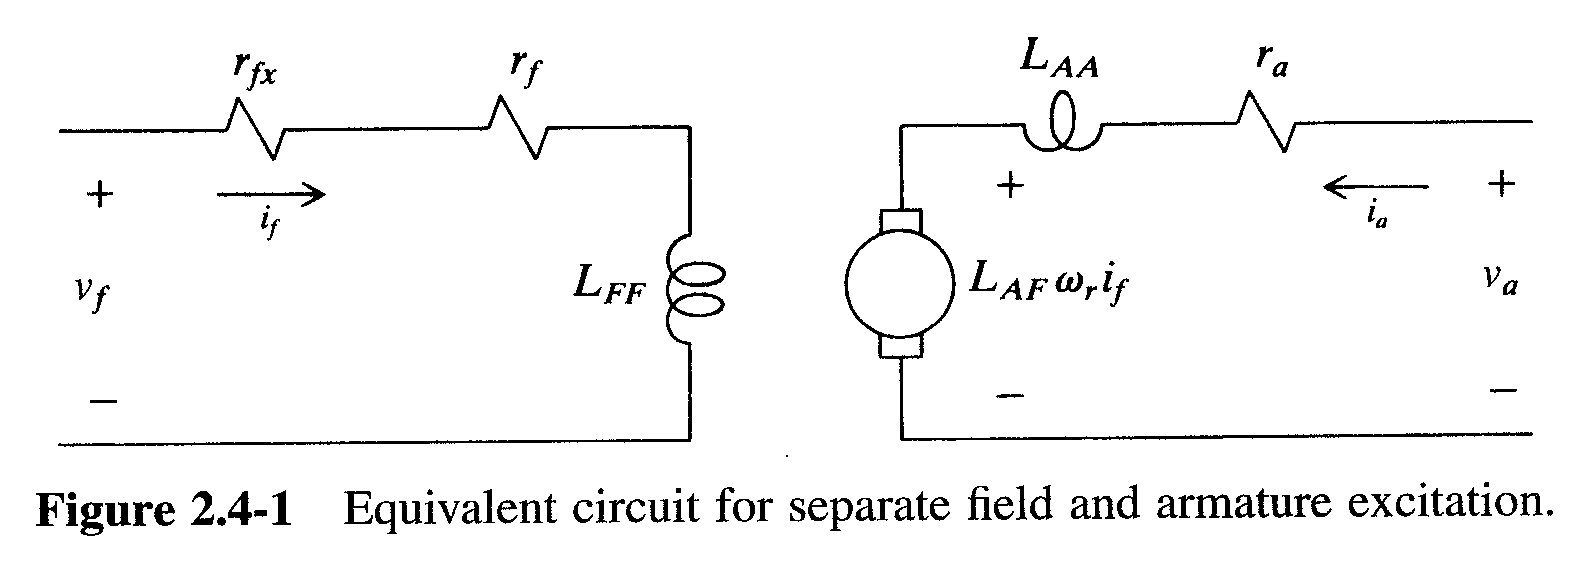 Dc Motor Field Wiring Diagram Schematic Diagrams 4 Wire Explained Compound Wound